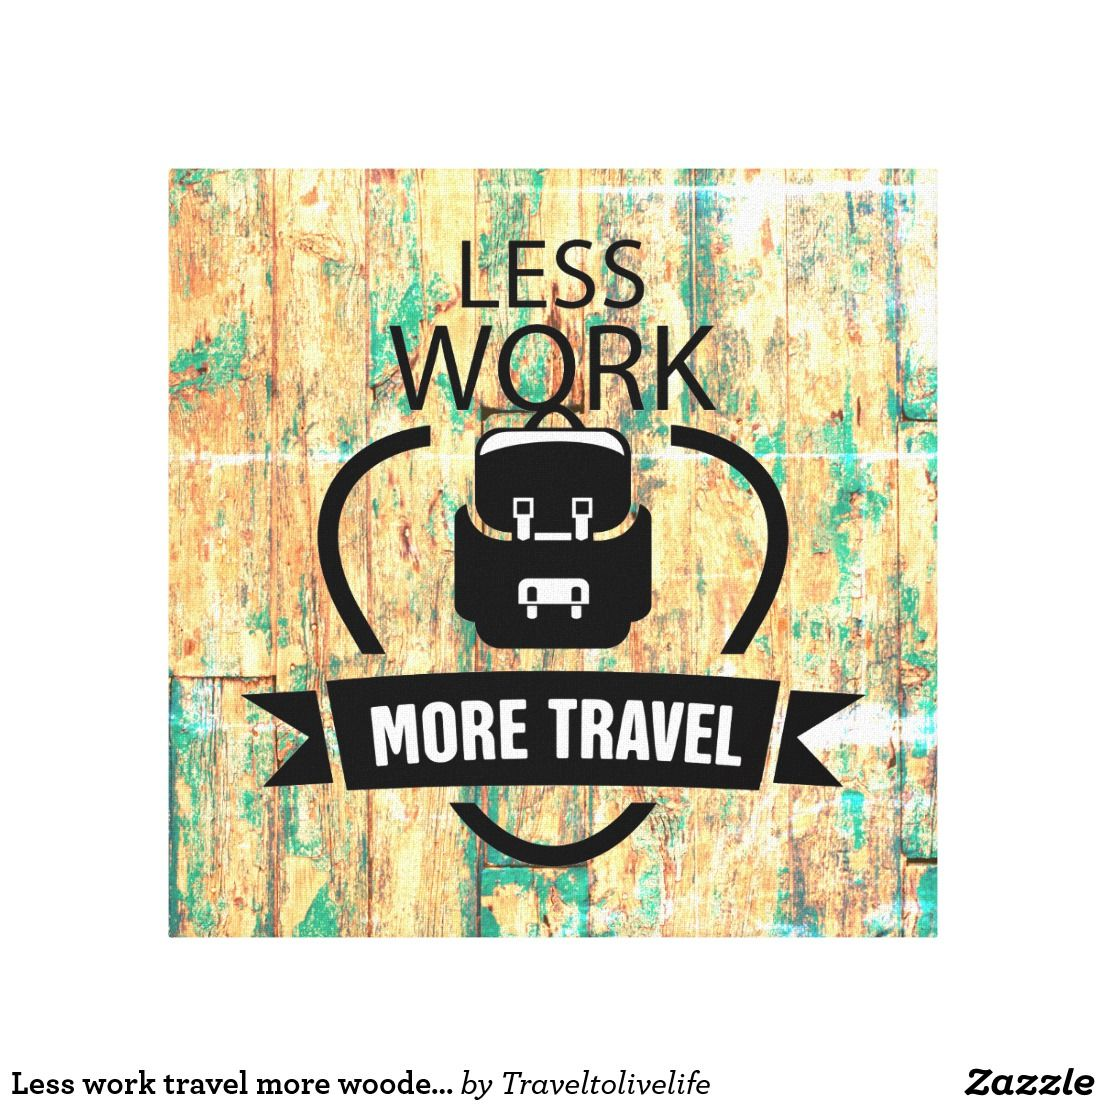 Less work travel more wooden texture wall art | Imagination and ...